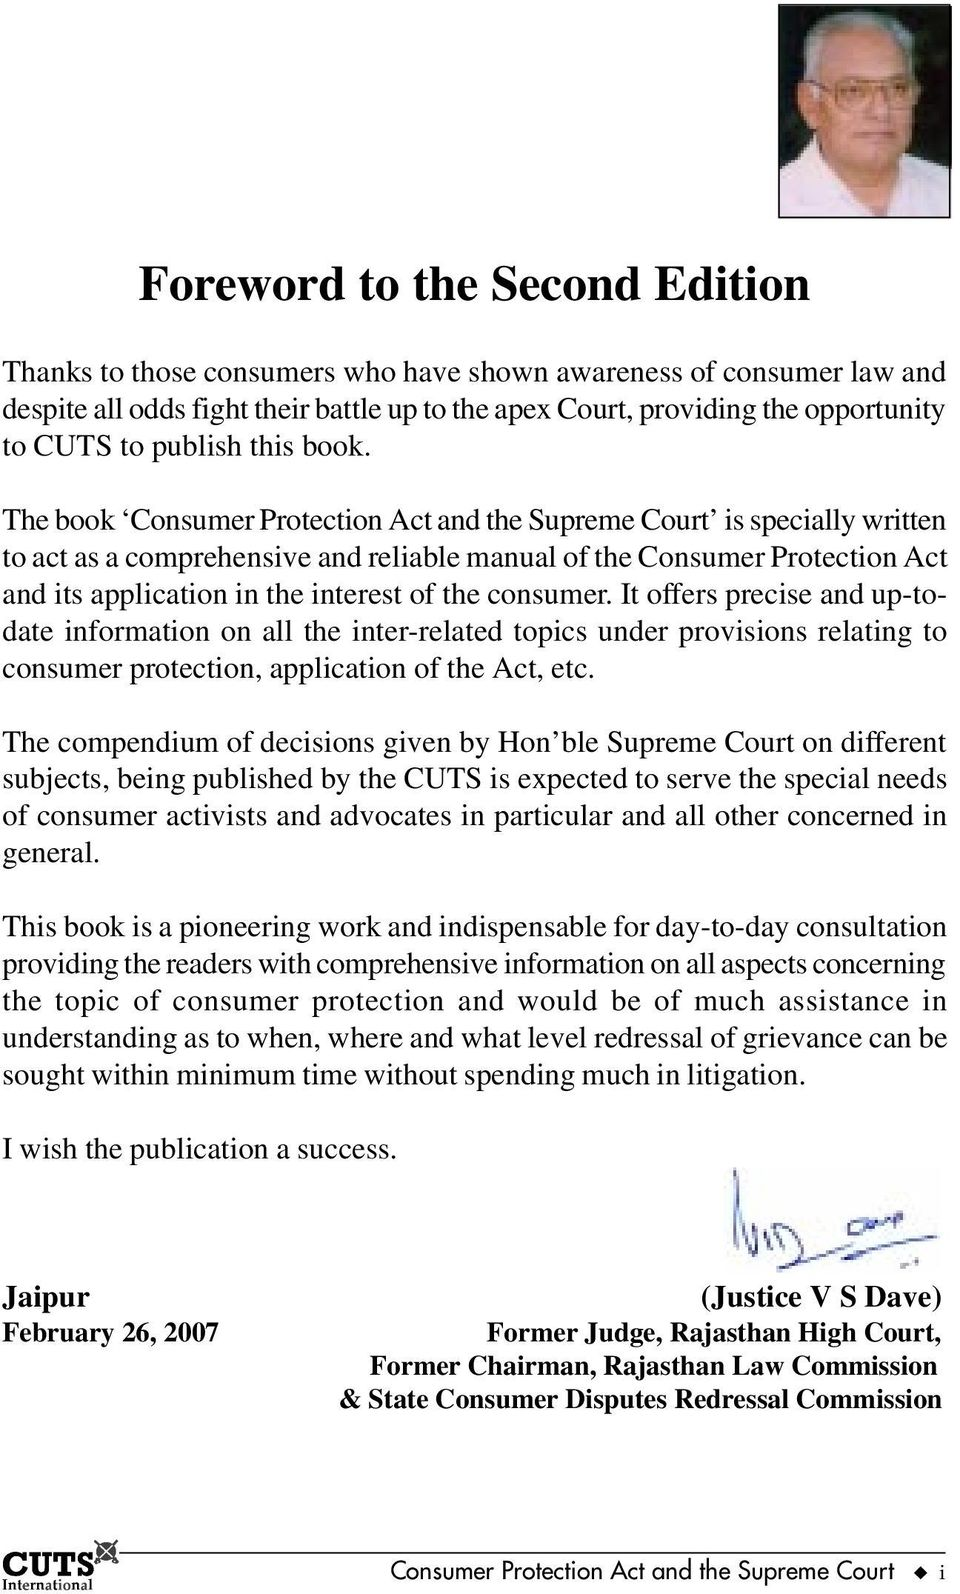 The book Consumer Protection Act and the Supreme Court is specially written to act as a comprehensive and reliable manual of the Consumer Protection Act and its application in the interest of the